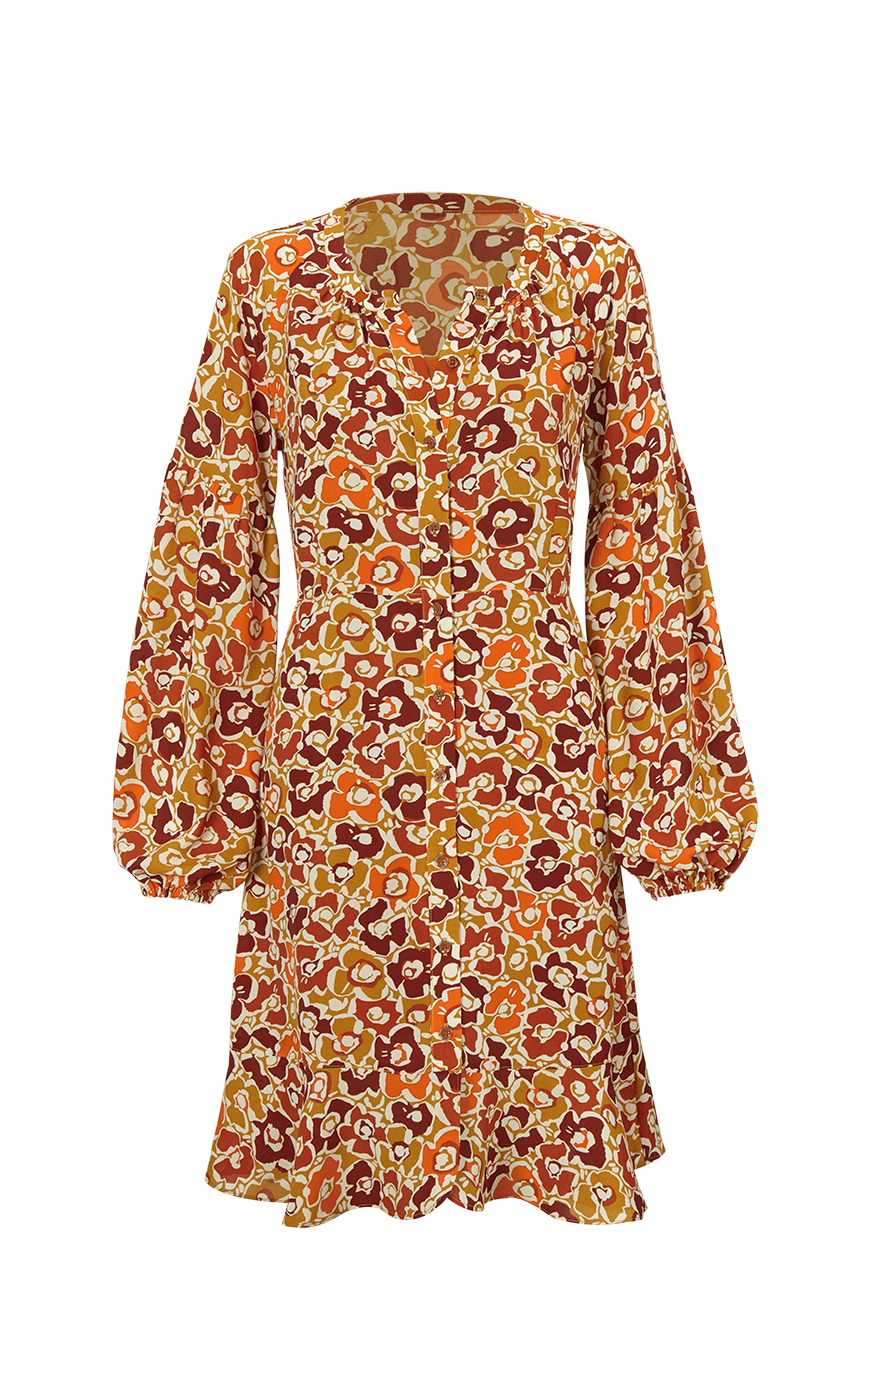 Daydream Dress in Floral Print Front